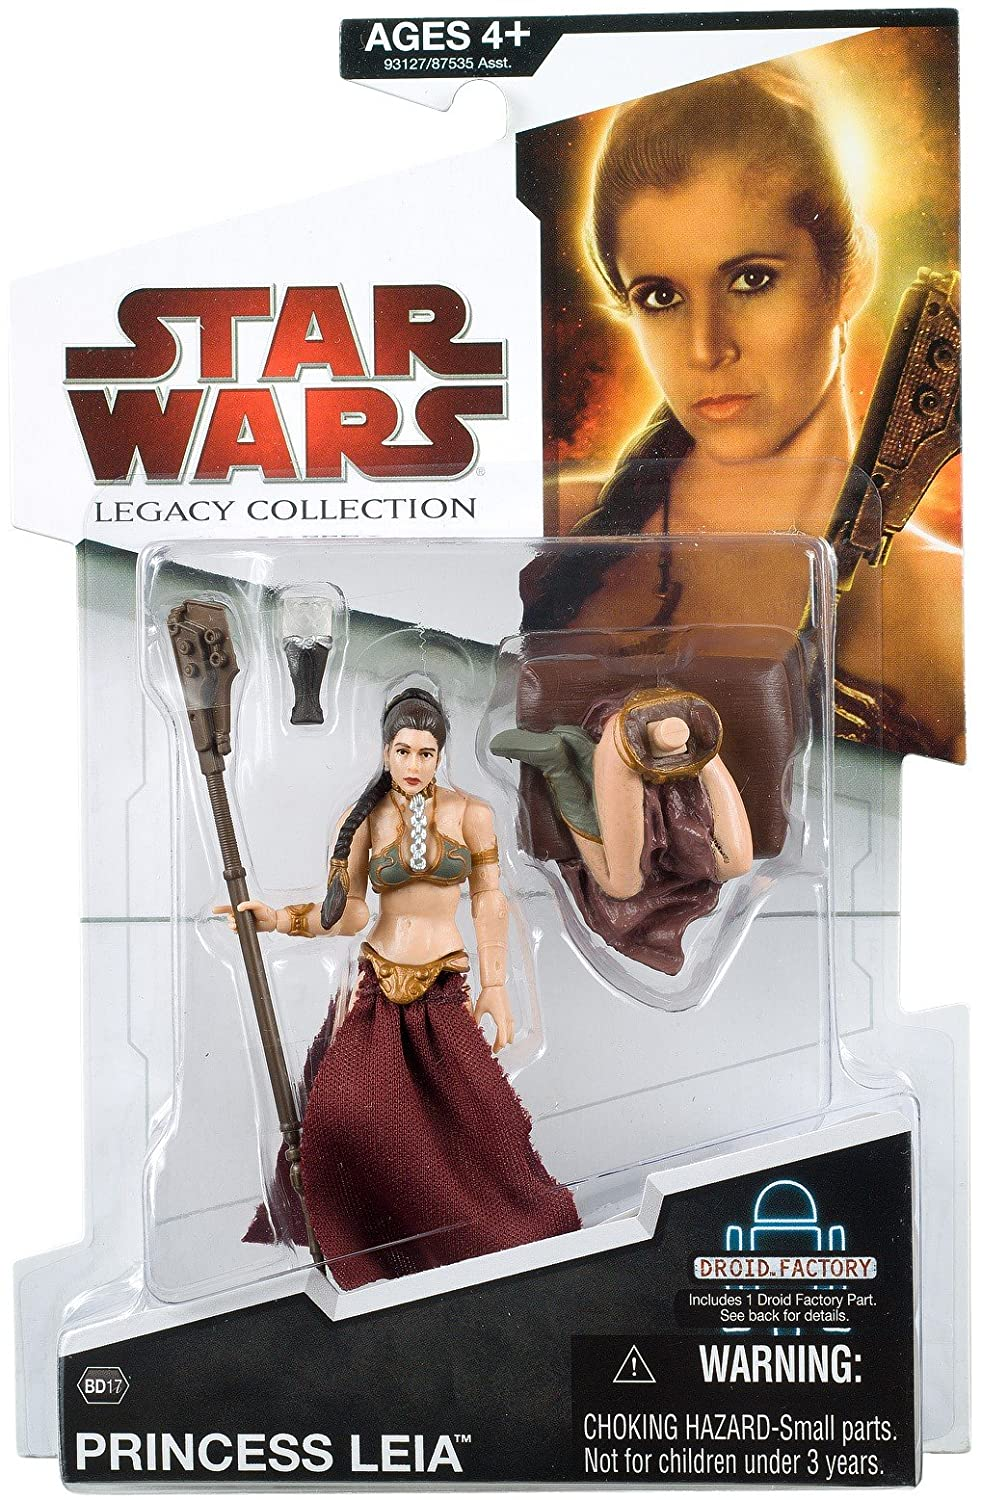 Star Wars 2009 Legacy Collection BuildADroid Action Figure BD No ...